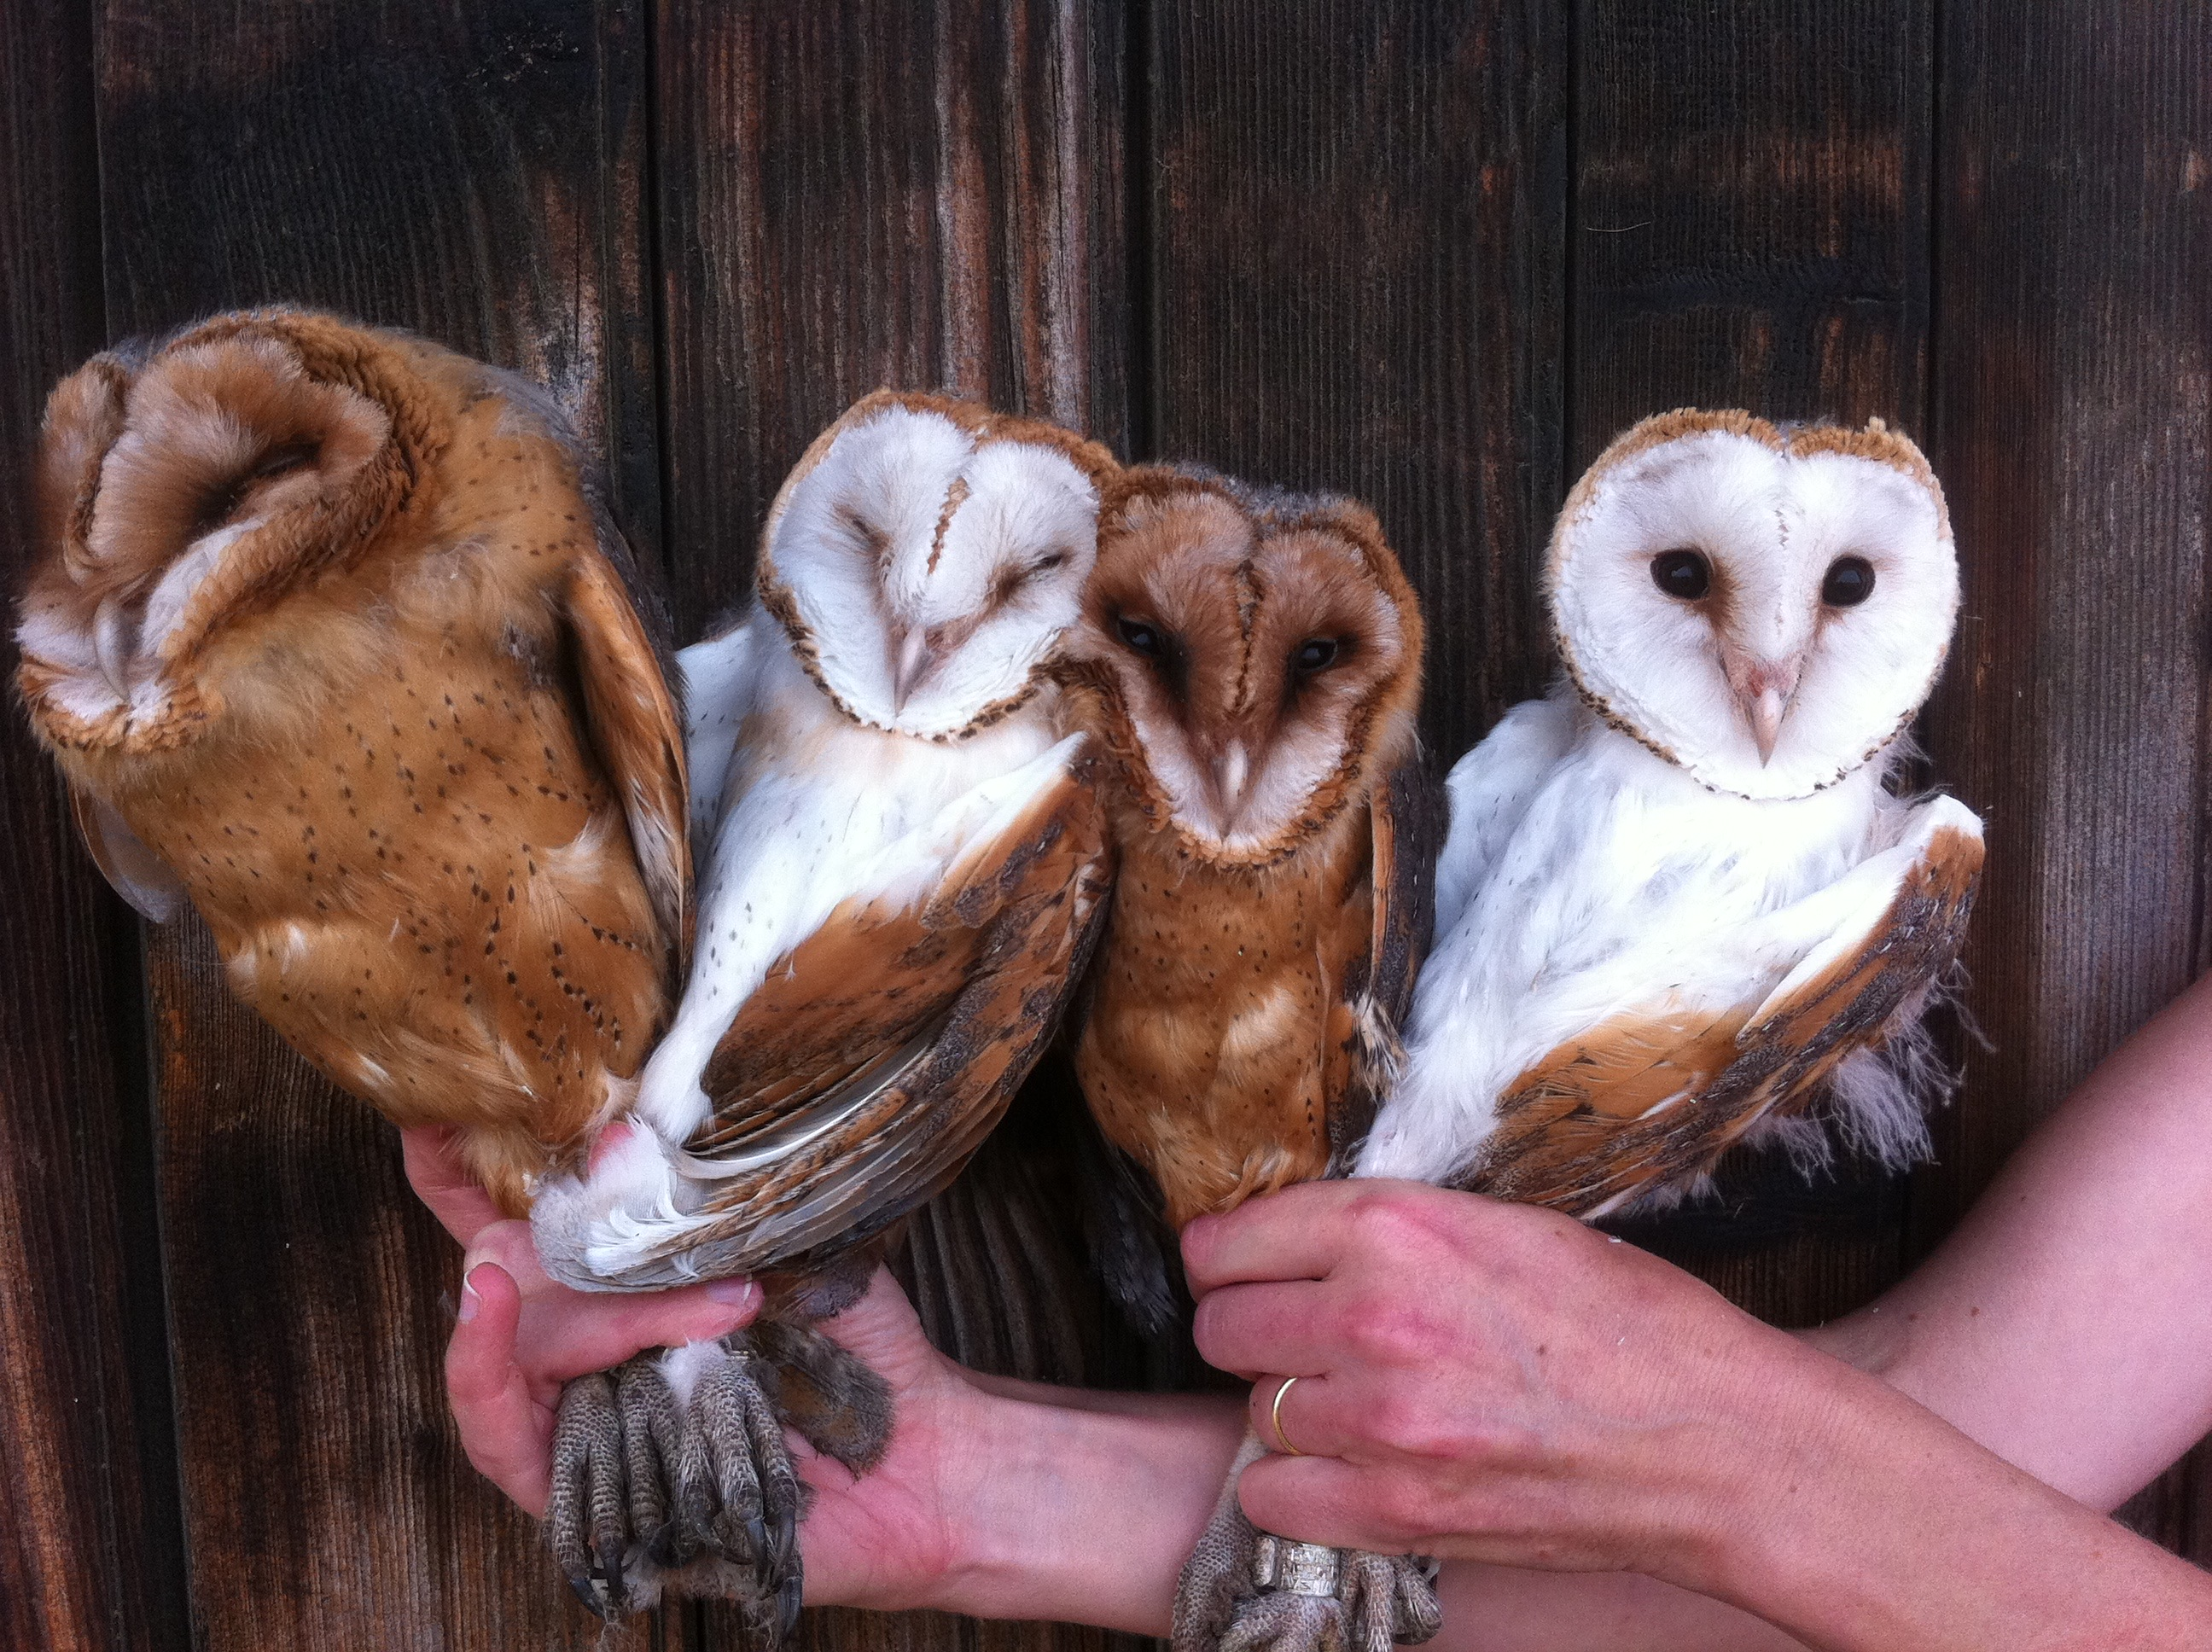 Nestling barn owls with varying colouration